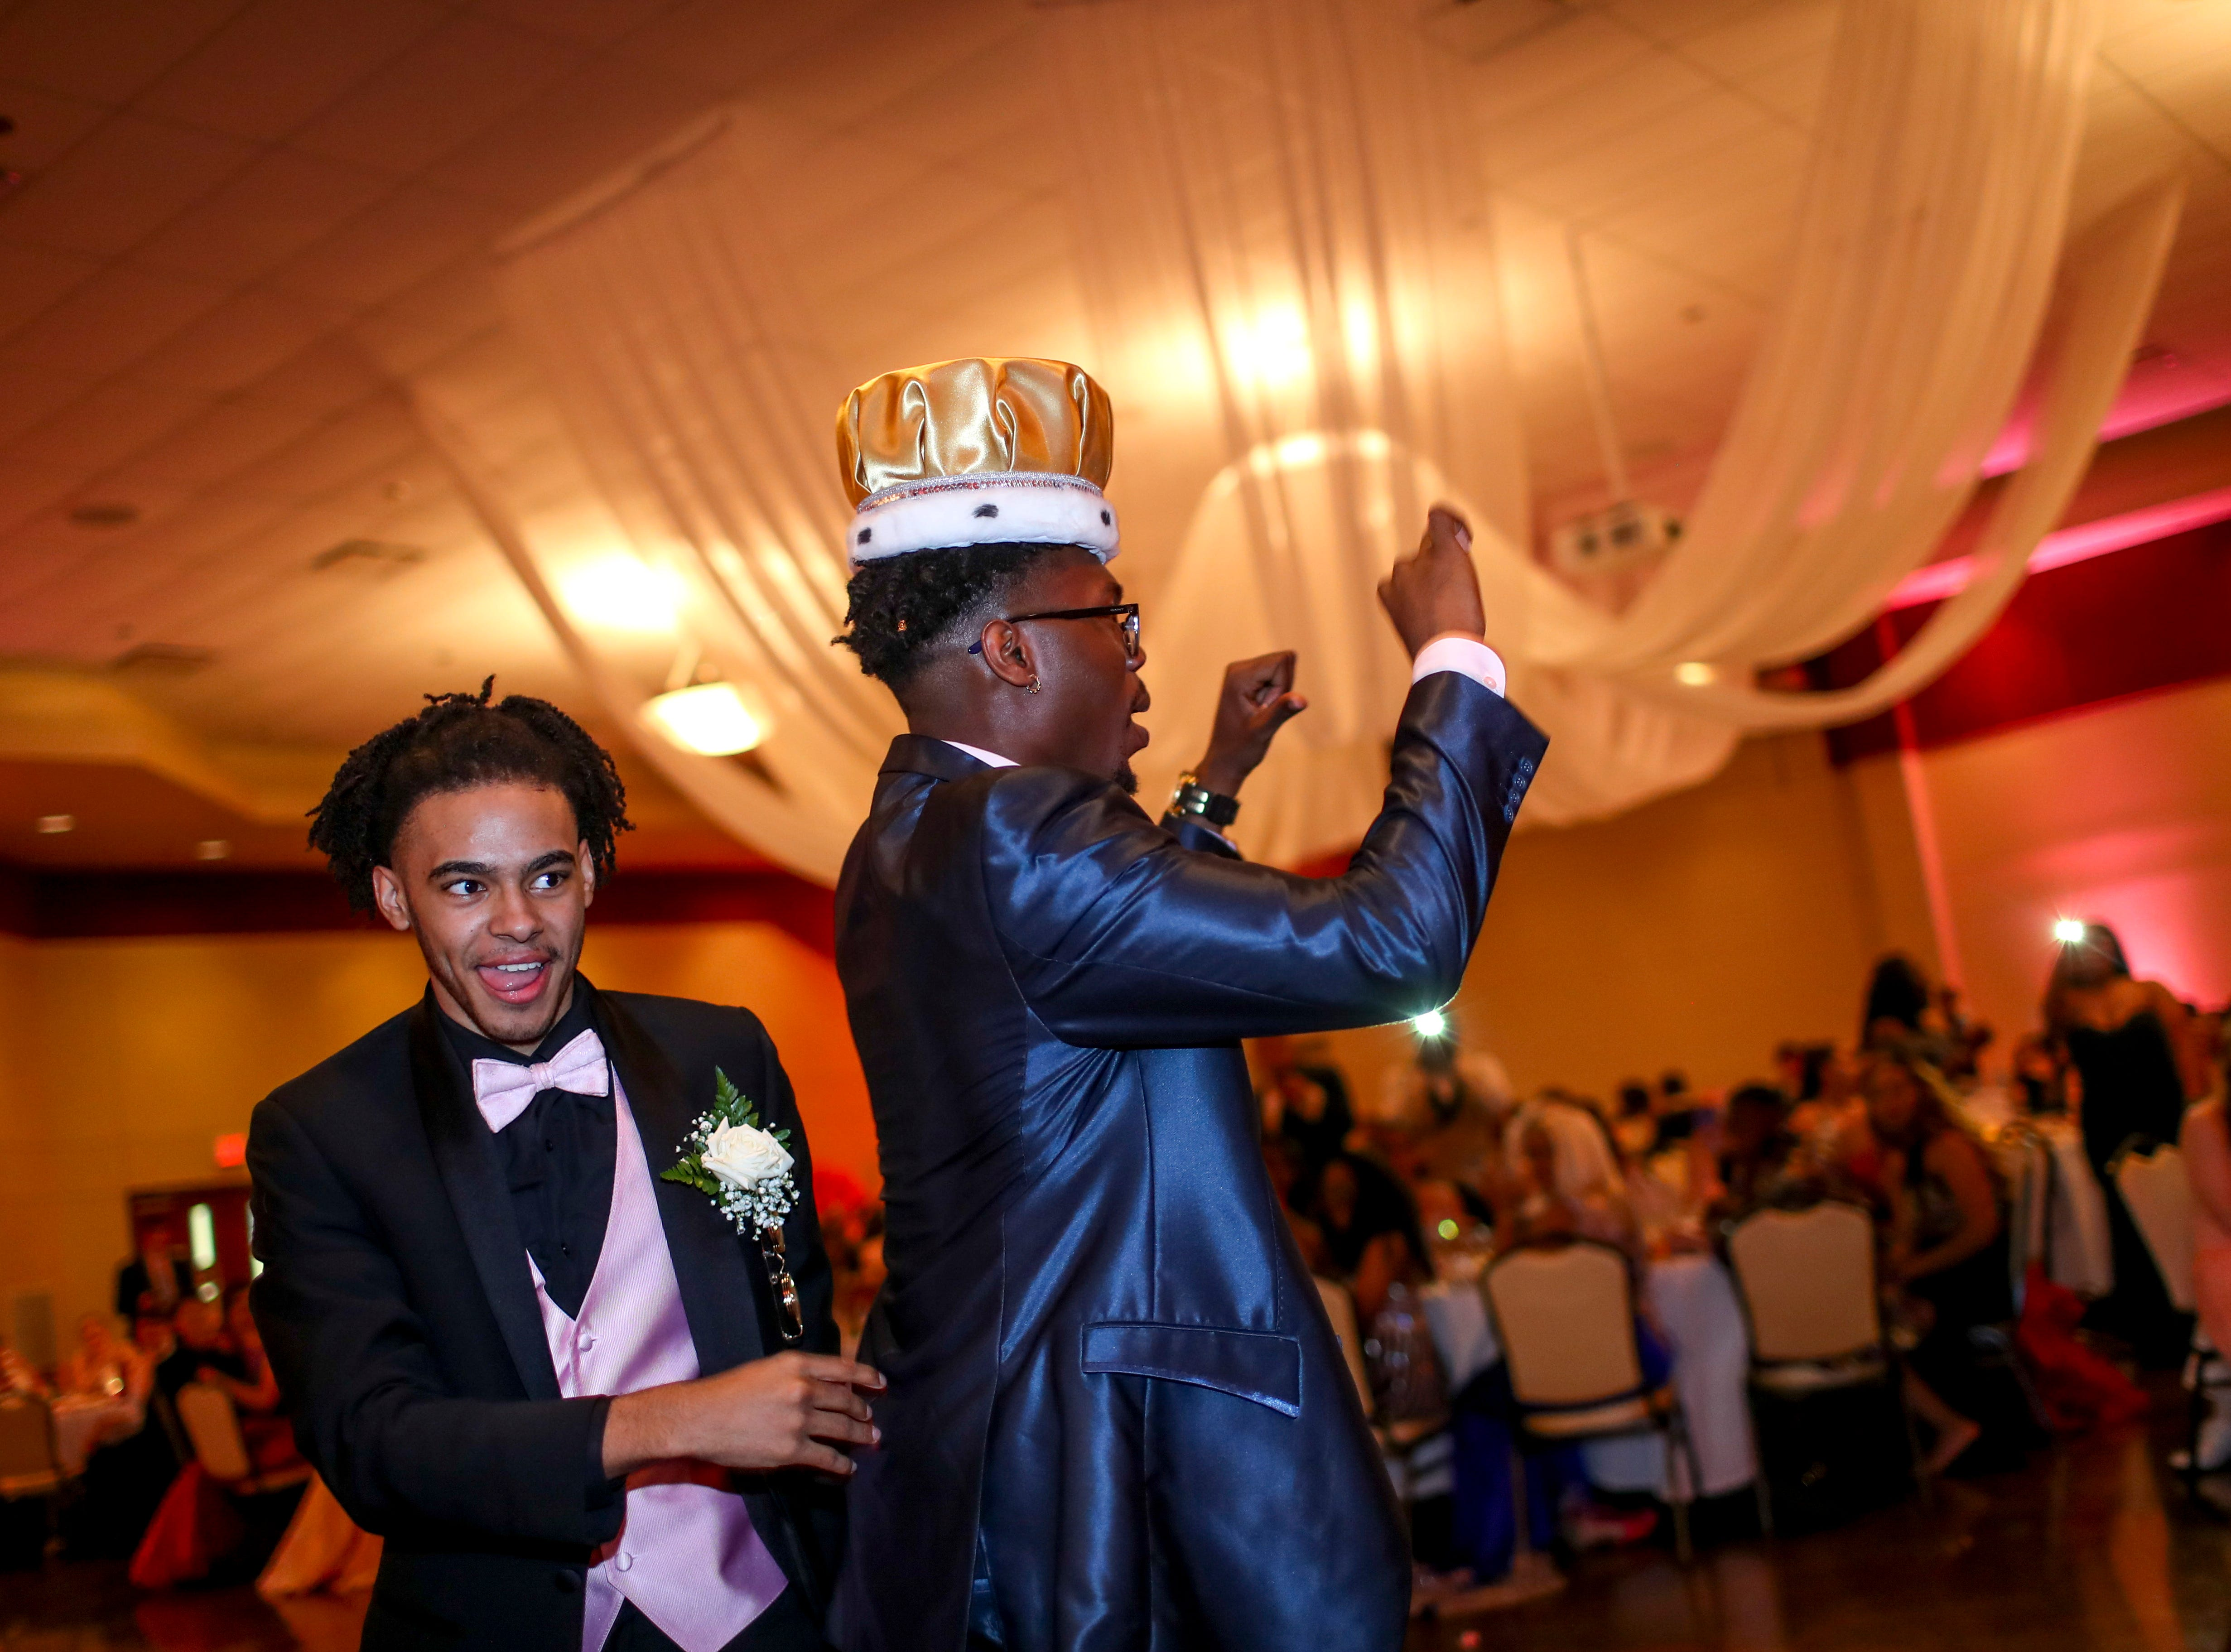 """Prom king Kaos Armstrong dances to the crowd after being crowned while hundreds of students from Kenwood High School celebrated their 2019 prom themed """"Cherish the Moment"""" at Valor Hall in Oak Grove, KY., on Saturday, May 4, 2019."""